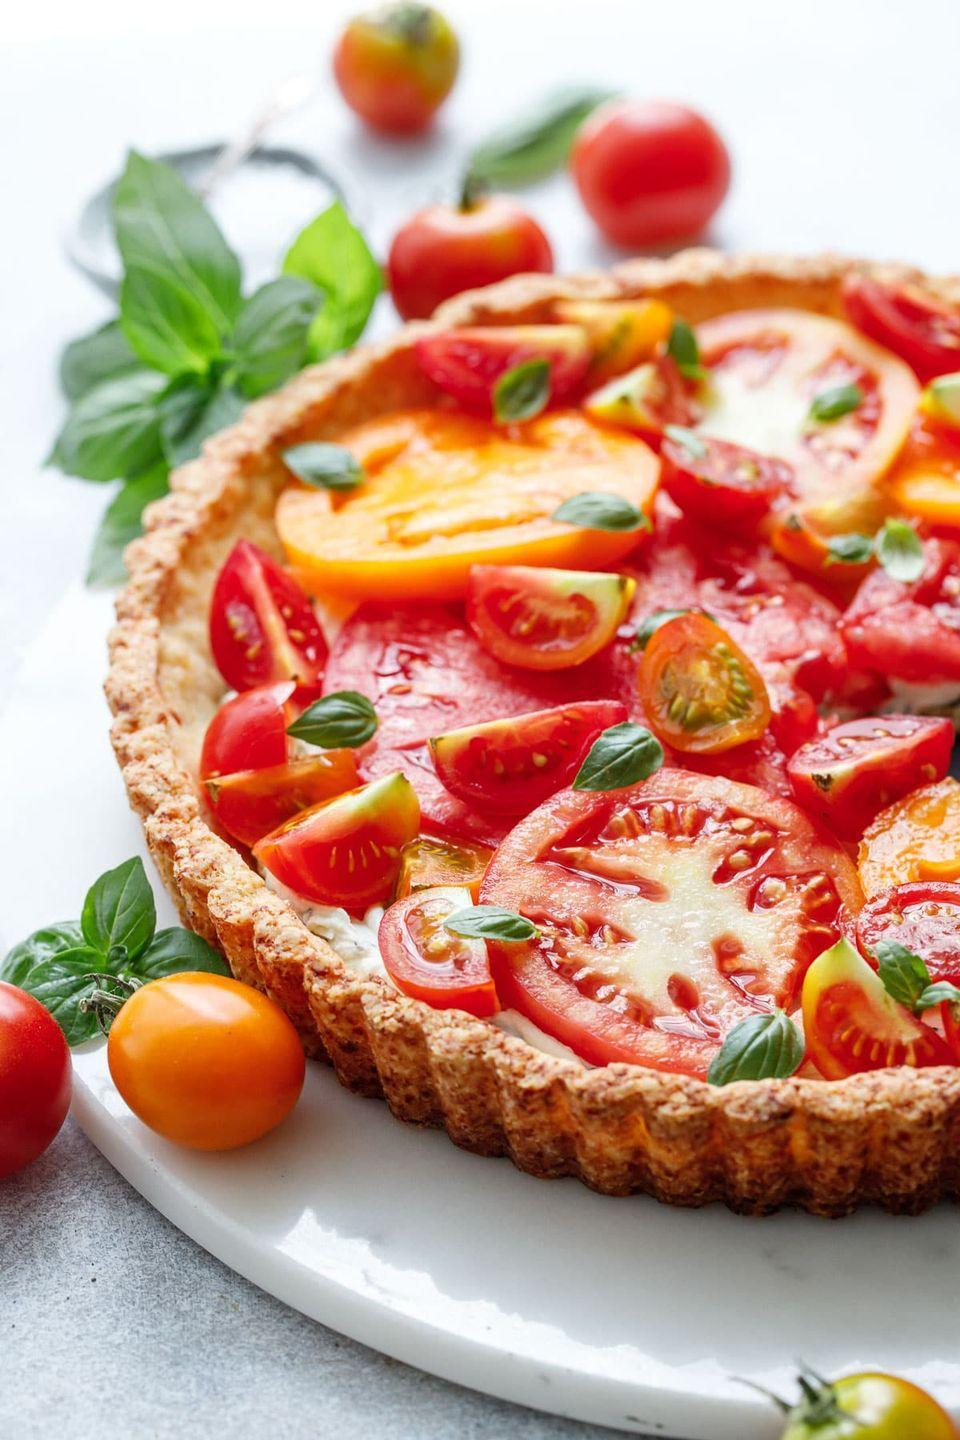 """<p>A savory parmesan shortbread crust is topped with a creamy basil goat cheese, then studded with an array of juicy vine-ripe tomatoes.</p><p><a href=""""https://www.loveandoliveoil.com/2020/07/goat-cheese-heirloom-tomato-tart.html"""" rel=""""nofollow noopener"""" target=""""_blank"""" data-ylk=""""slk:Get the recipe."""" class=""""link rapid-noclick-resp"""">Get the recipe. </a></p>"""